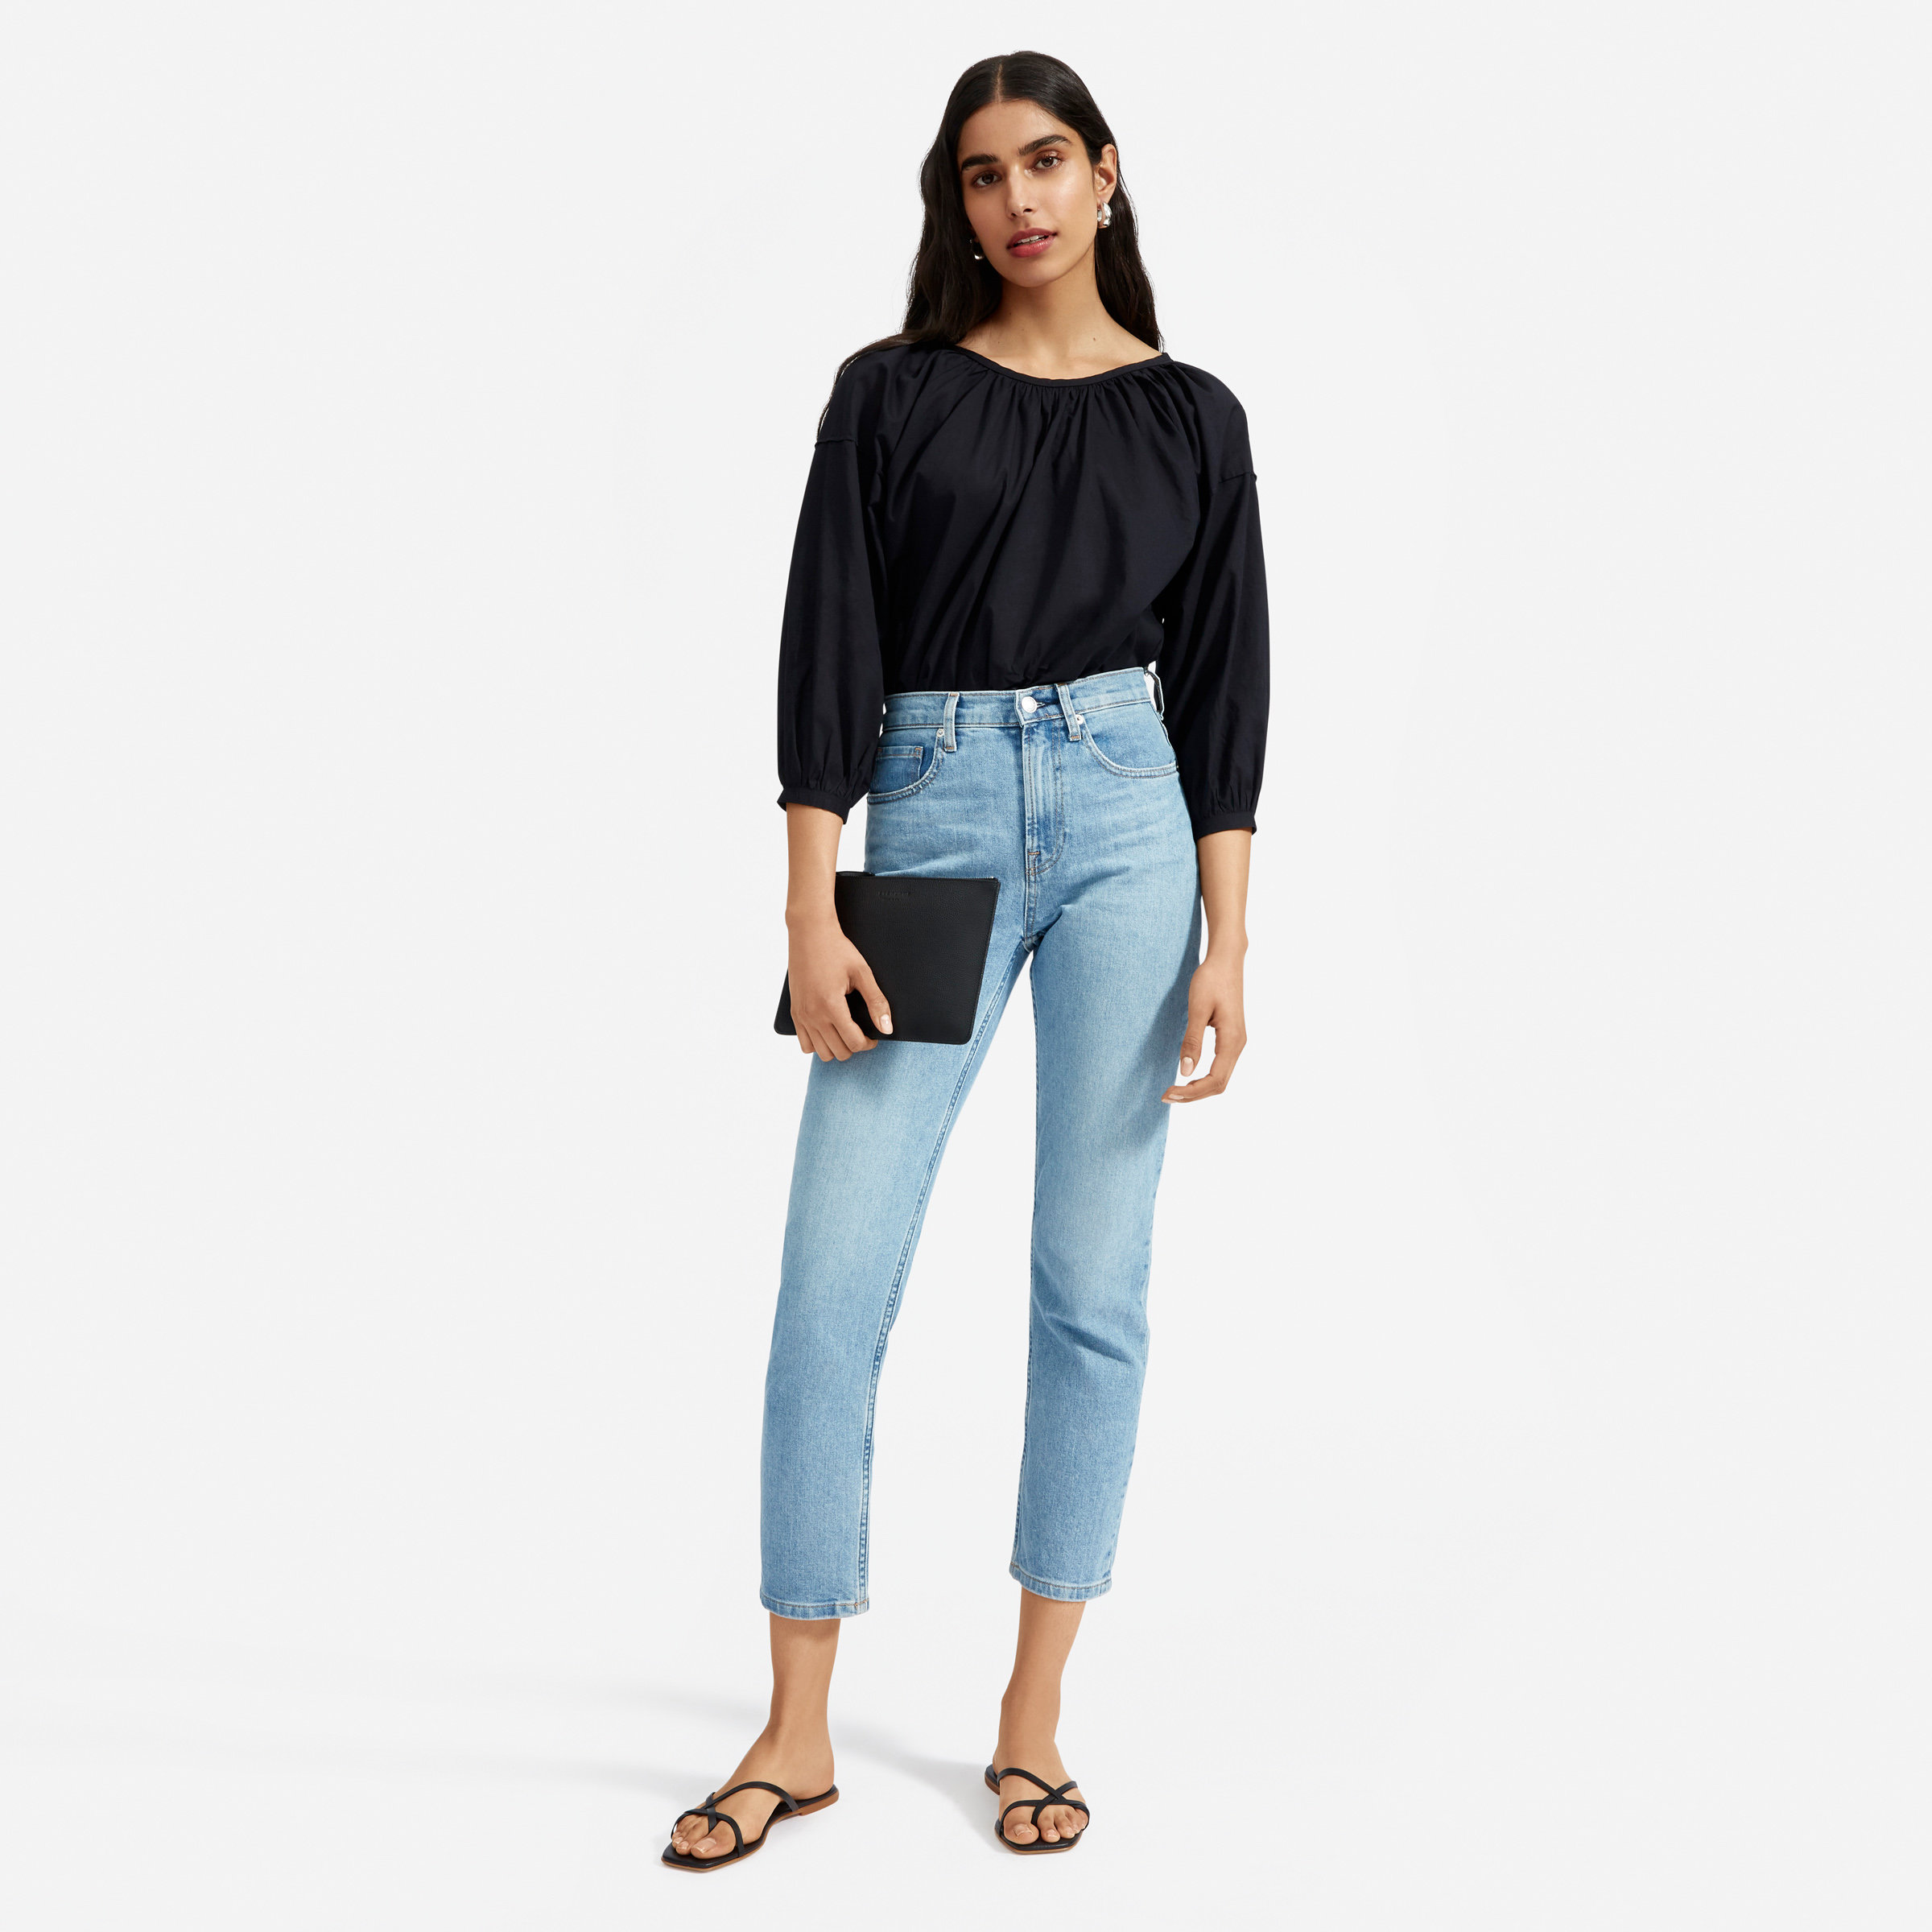 1c7dece6f4aa61 Women's Shirts, Tops & Silk Blouses | Everlane